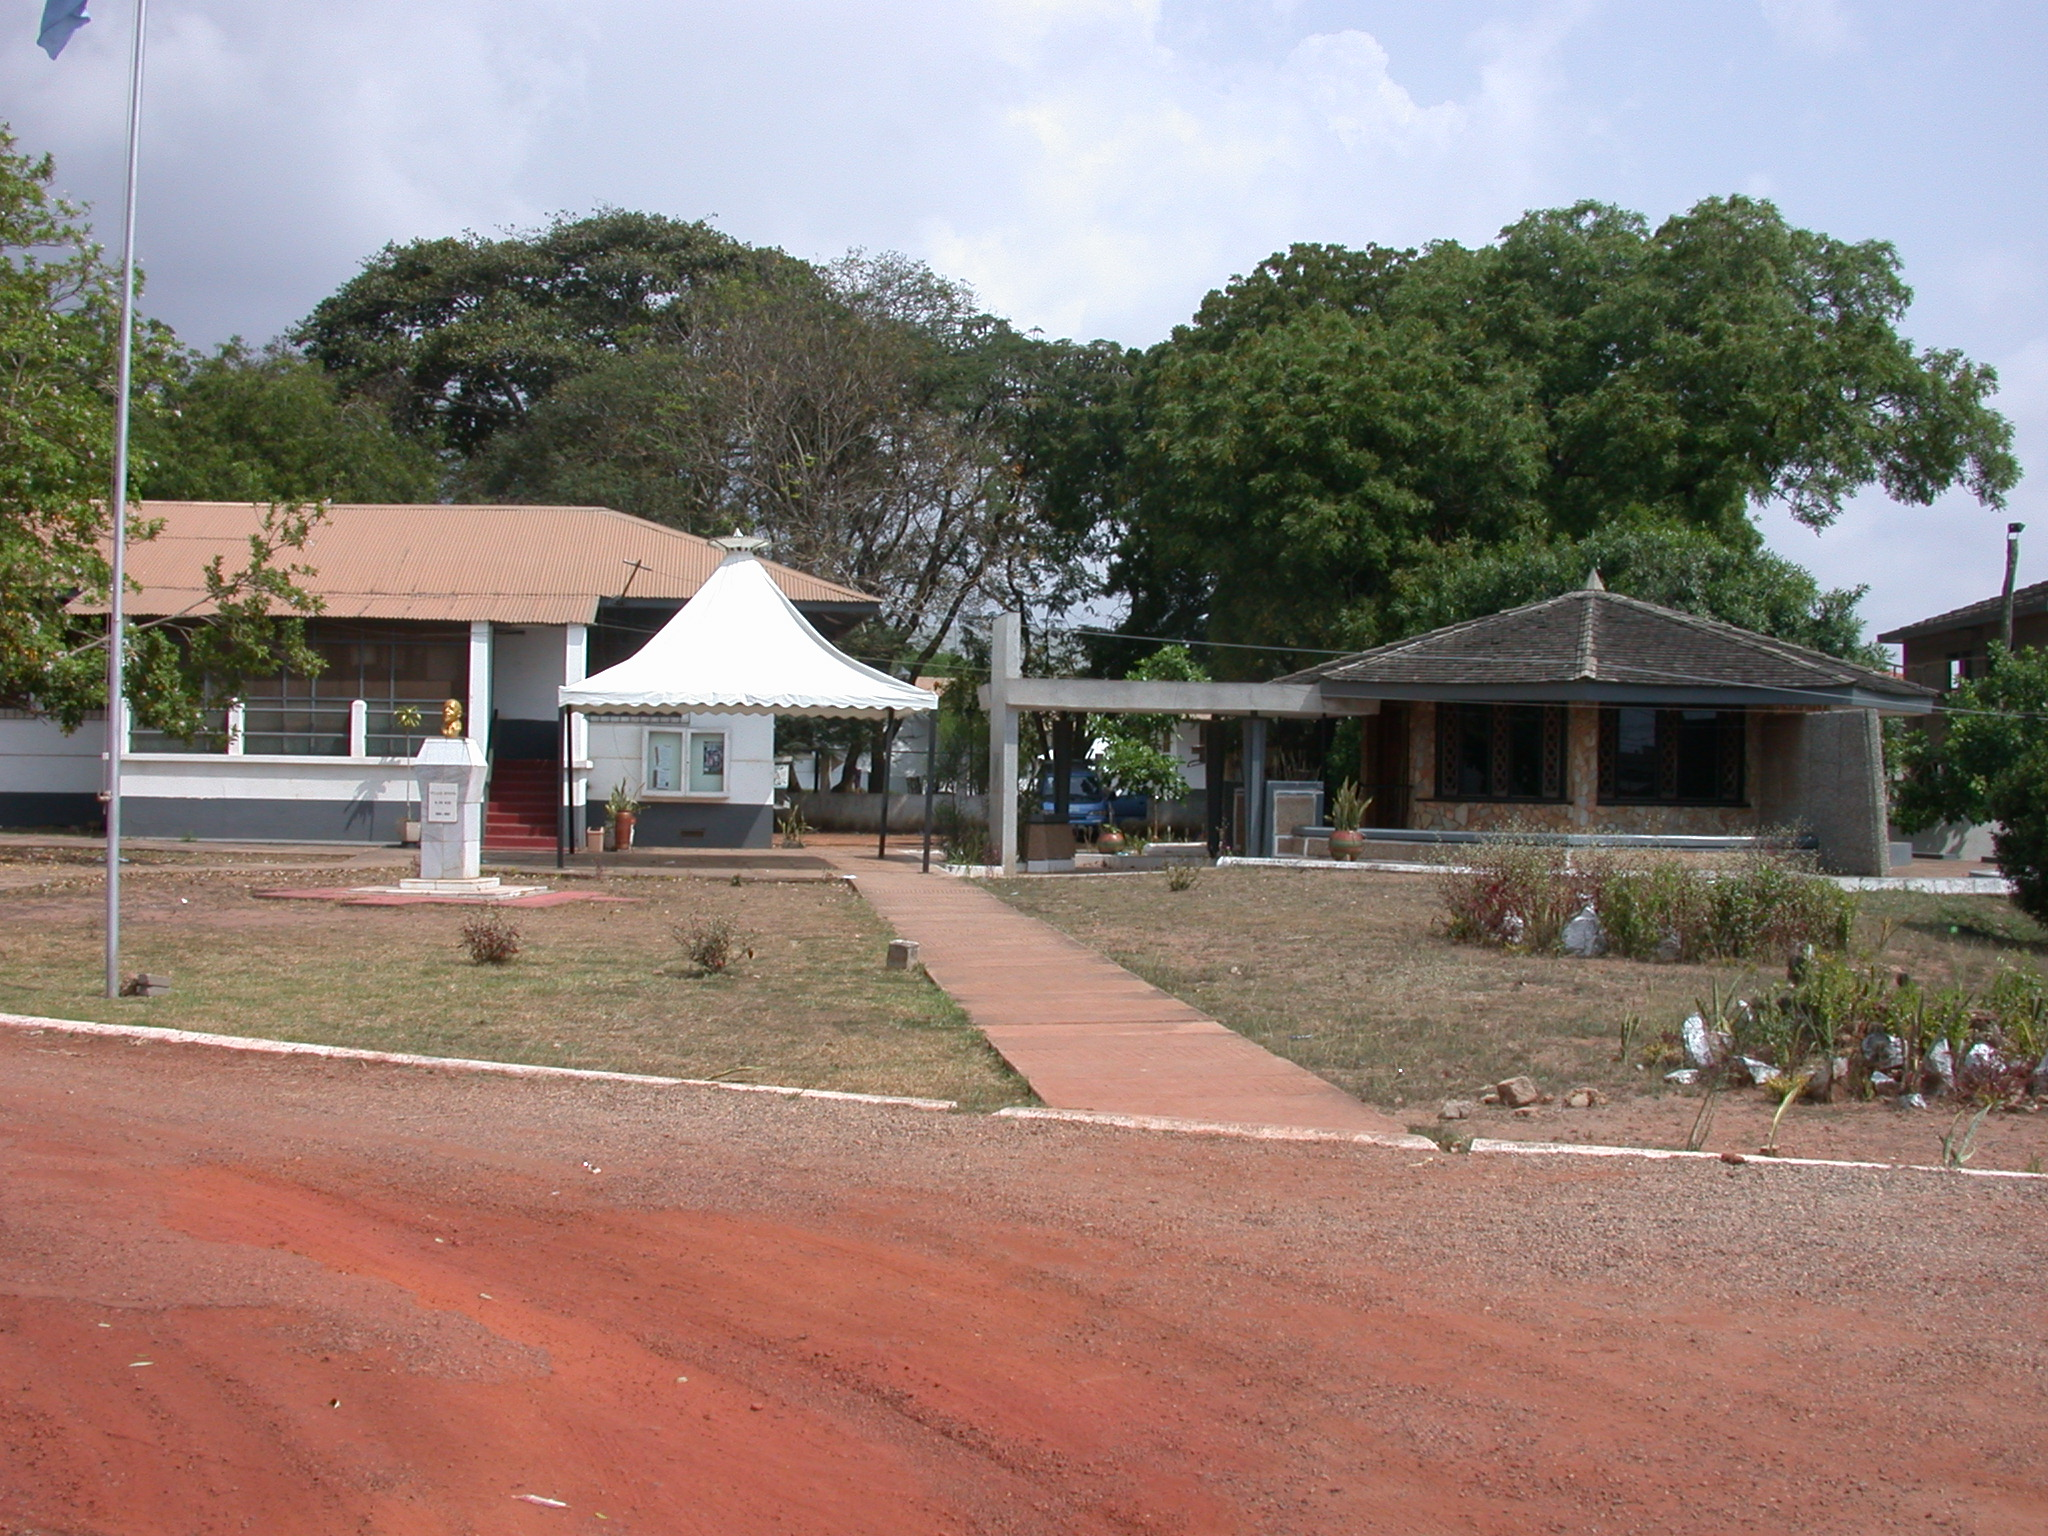 Premises of WEB DuBois Memorial Centre for Pan African Culture, Accra, Ghana